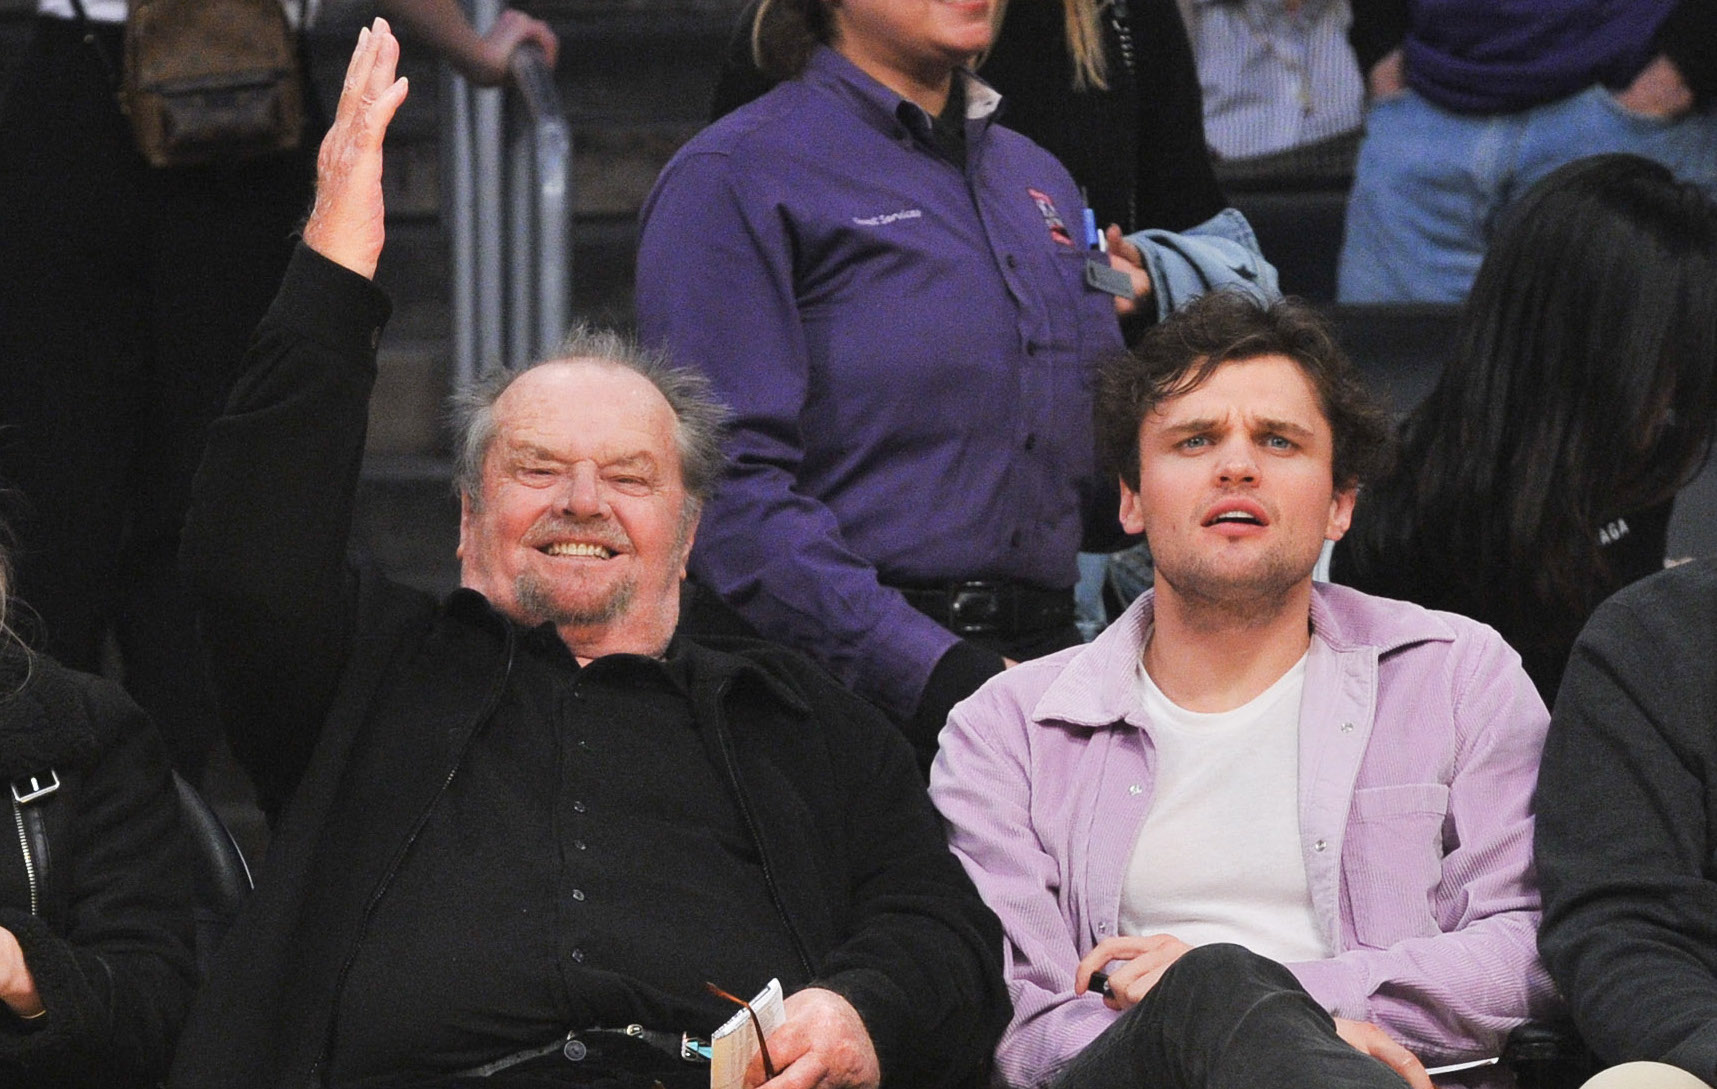 Jack Nicholson Makes Rare Public Appearance With Son Ray At Game Ray nicholson maakt, vanuit zijn studio nicholson illustraties, illustraties op maat! https www closerweekly com posts jack nicholson makes rare public appearance with son ray at game